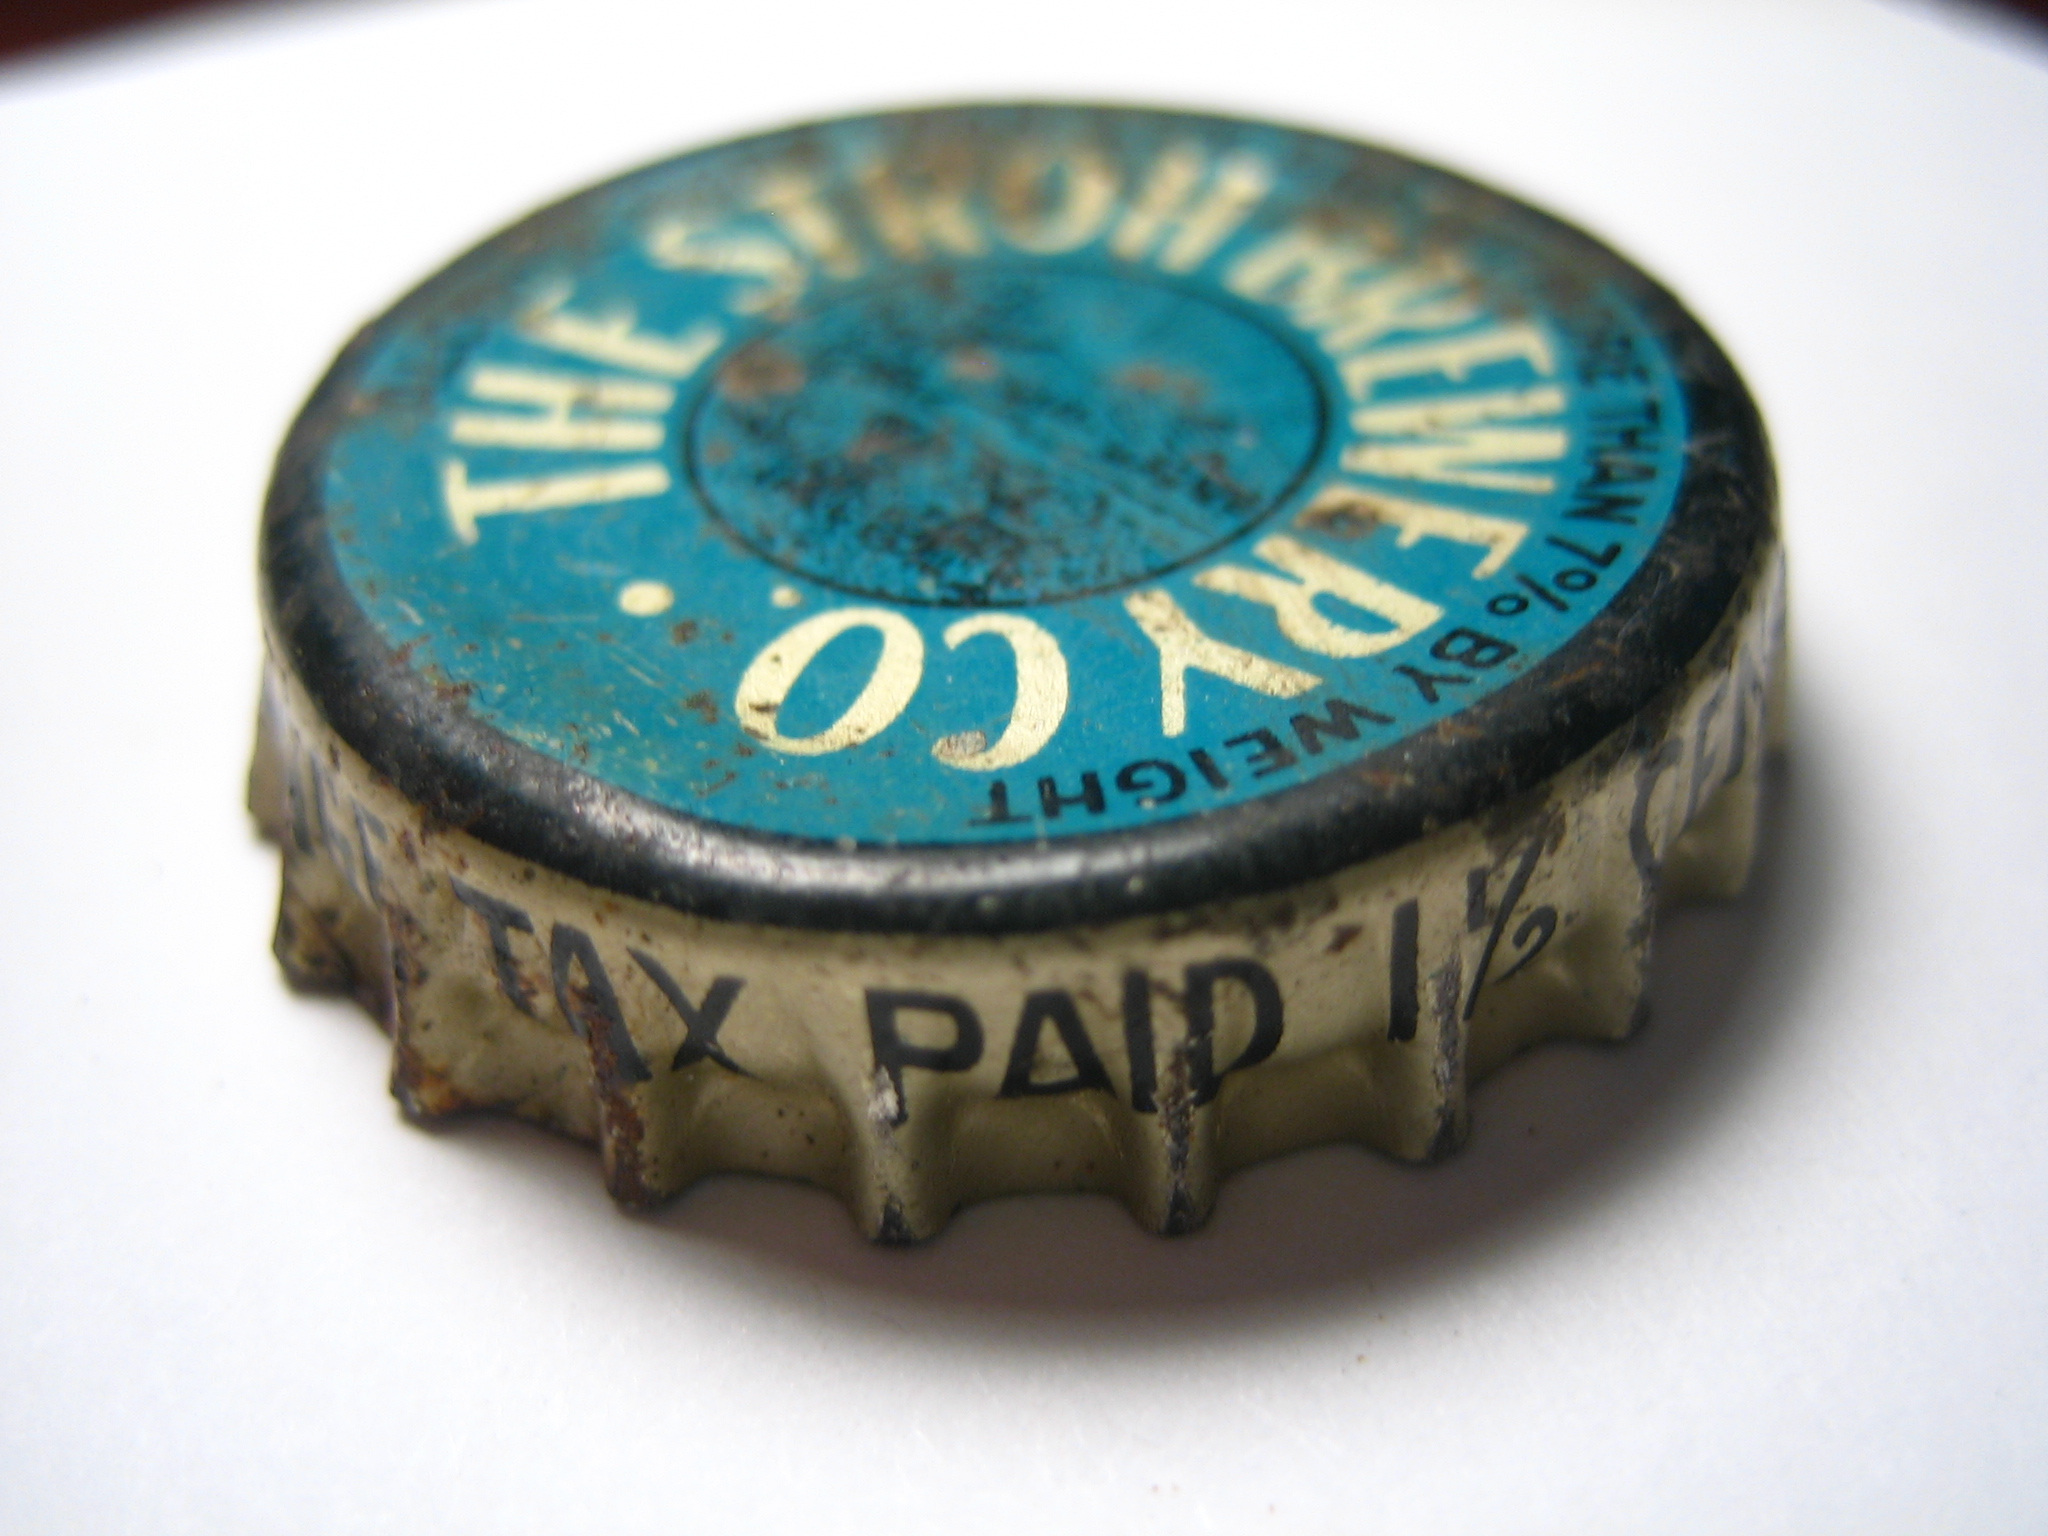 Cork Lined Stroh Beer Cap Find Off Topic Discussion